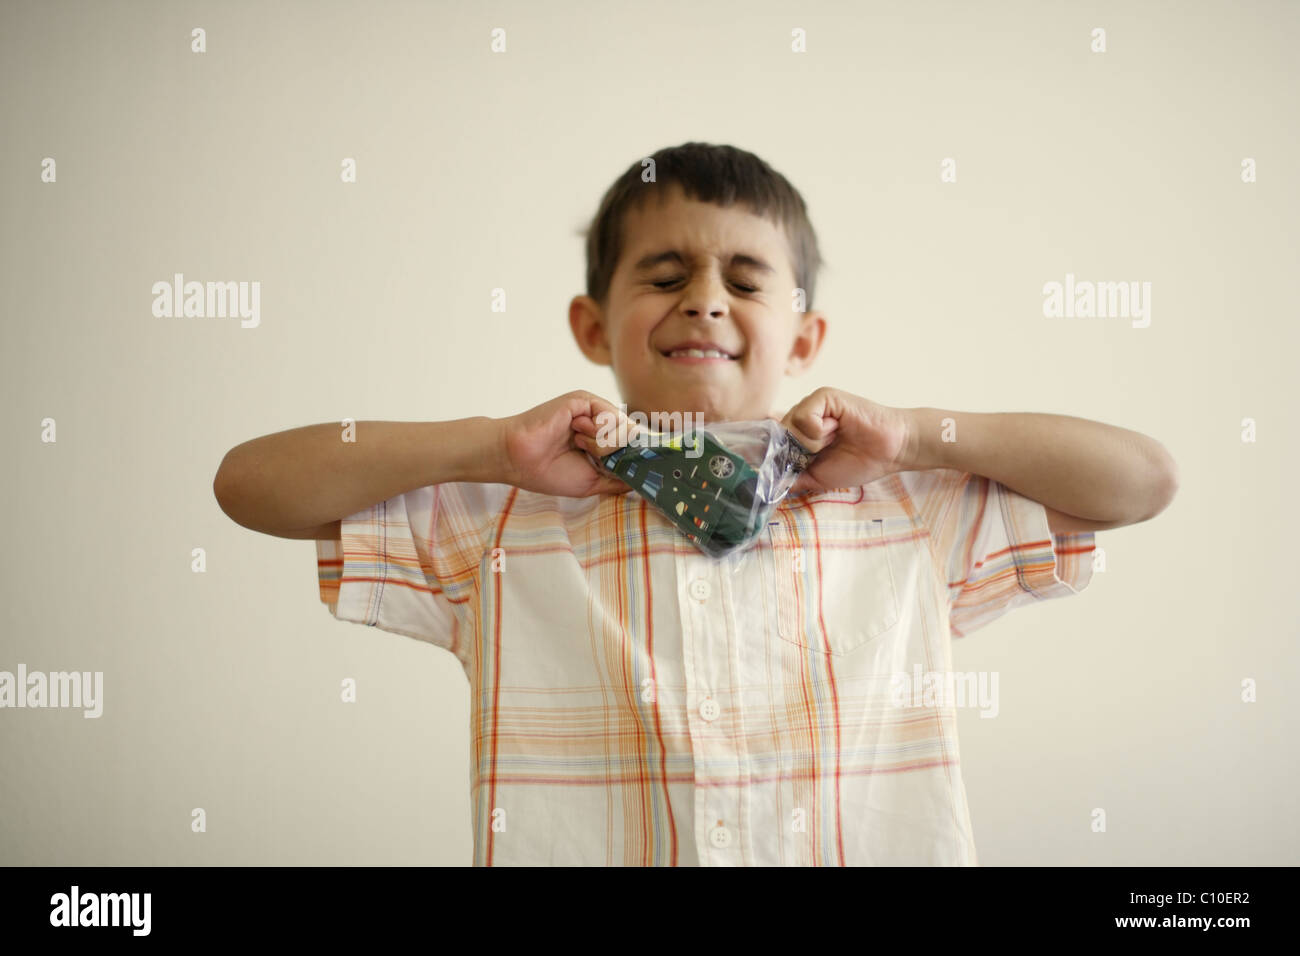 Boy tries hard to pull apart plastic bag containing toy - Stock Image